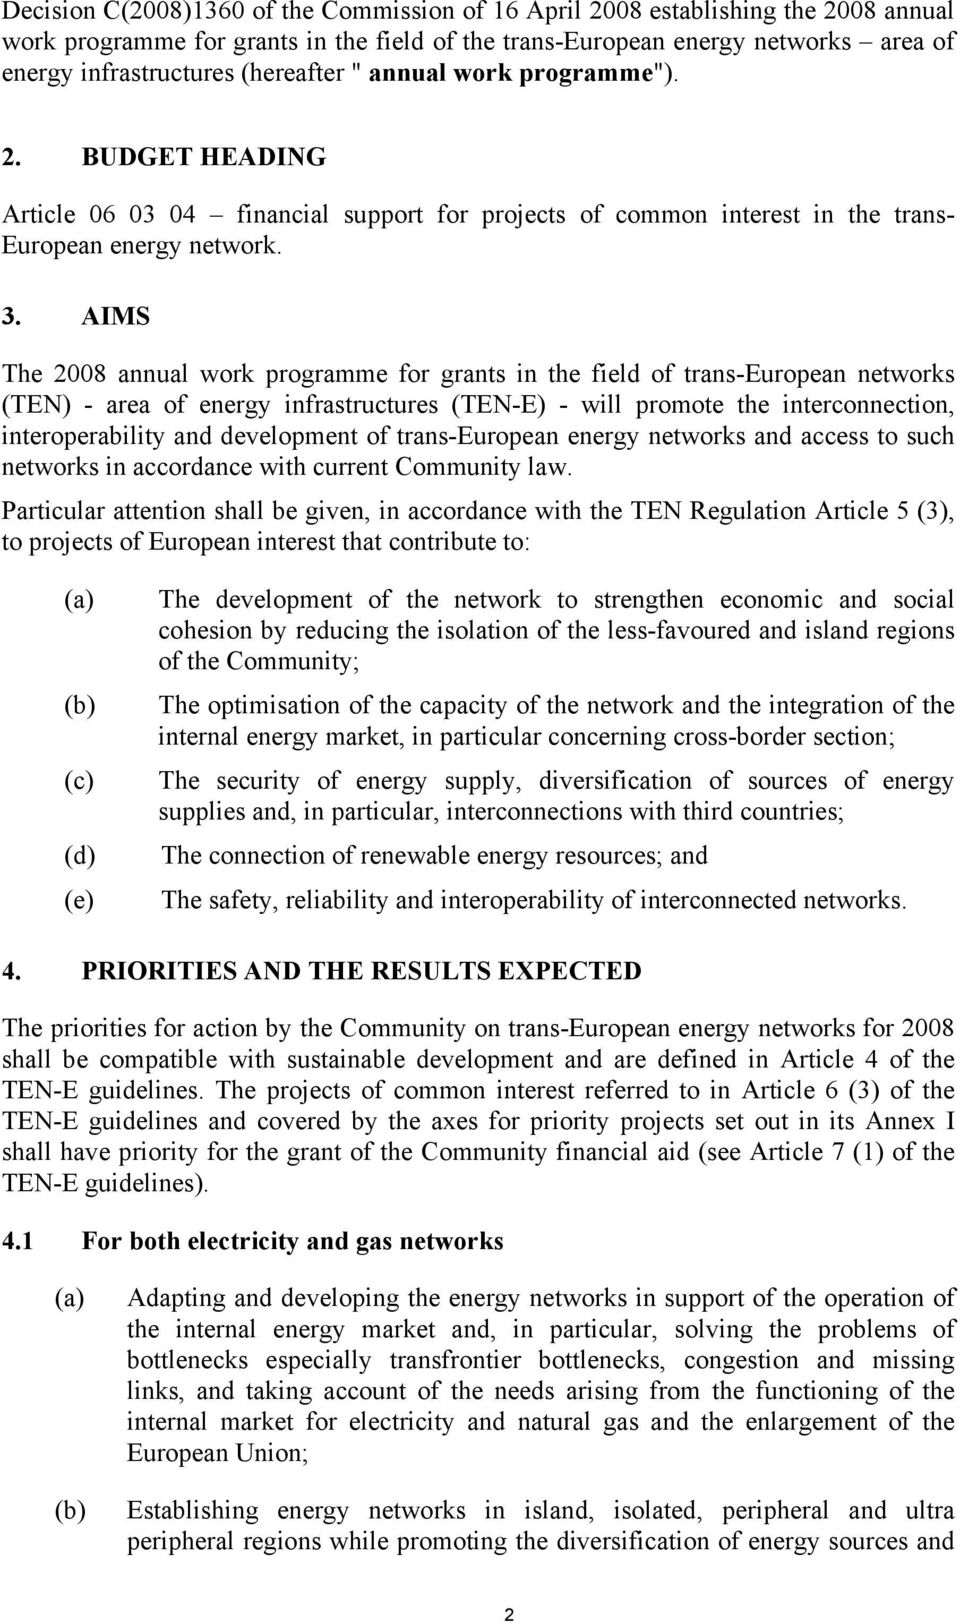 AIMS The 2008 annual work programme for grants in the field of trans-european networks (TEN) - area of energy infrastructures (TEN-E) - will promote the interconnection, interoperability and